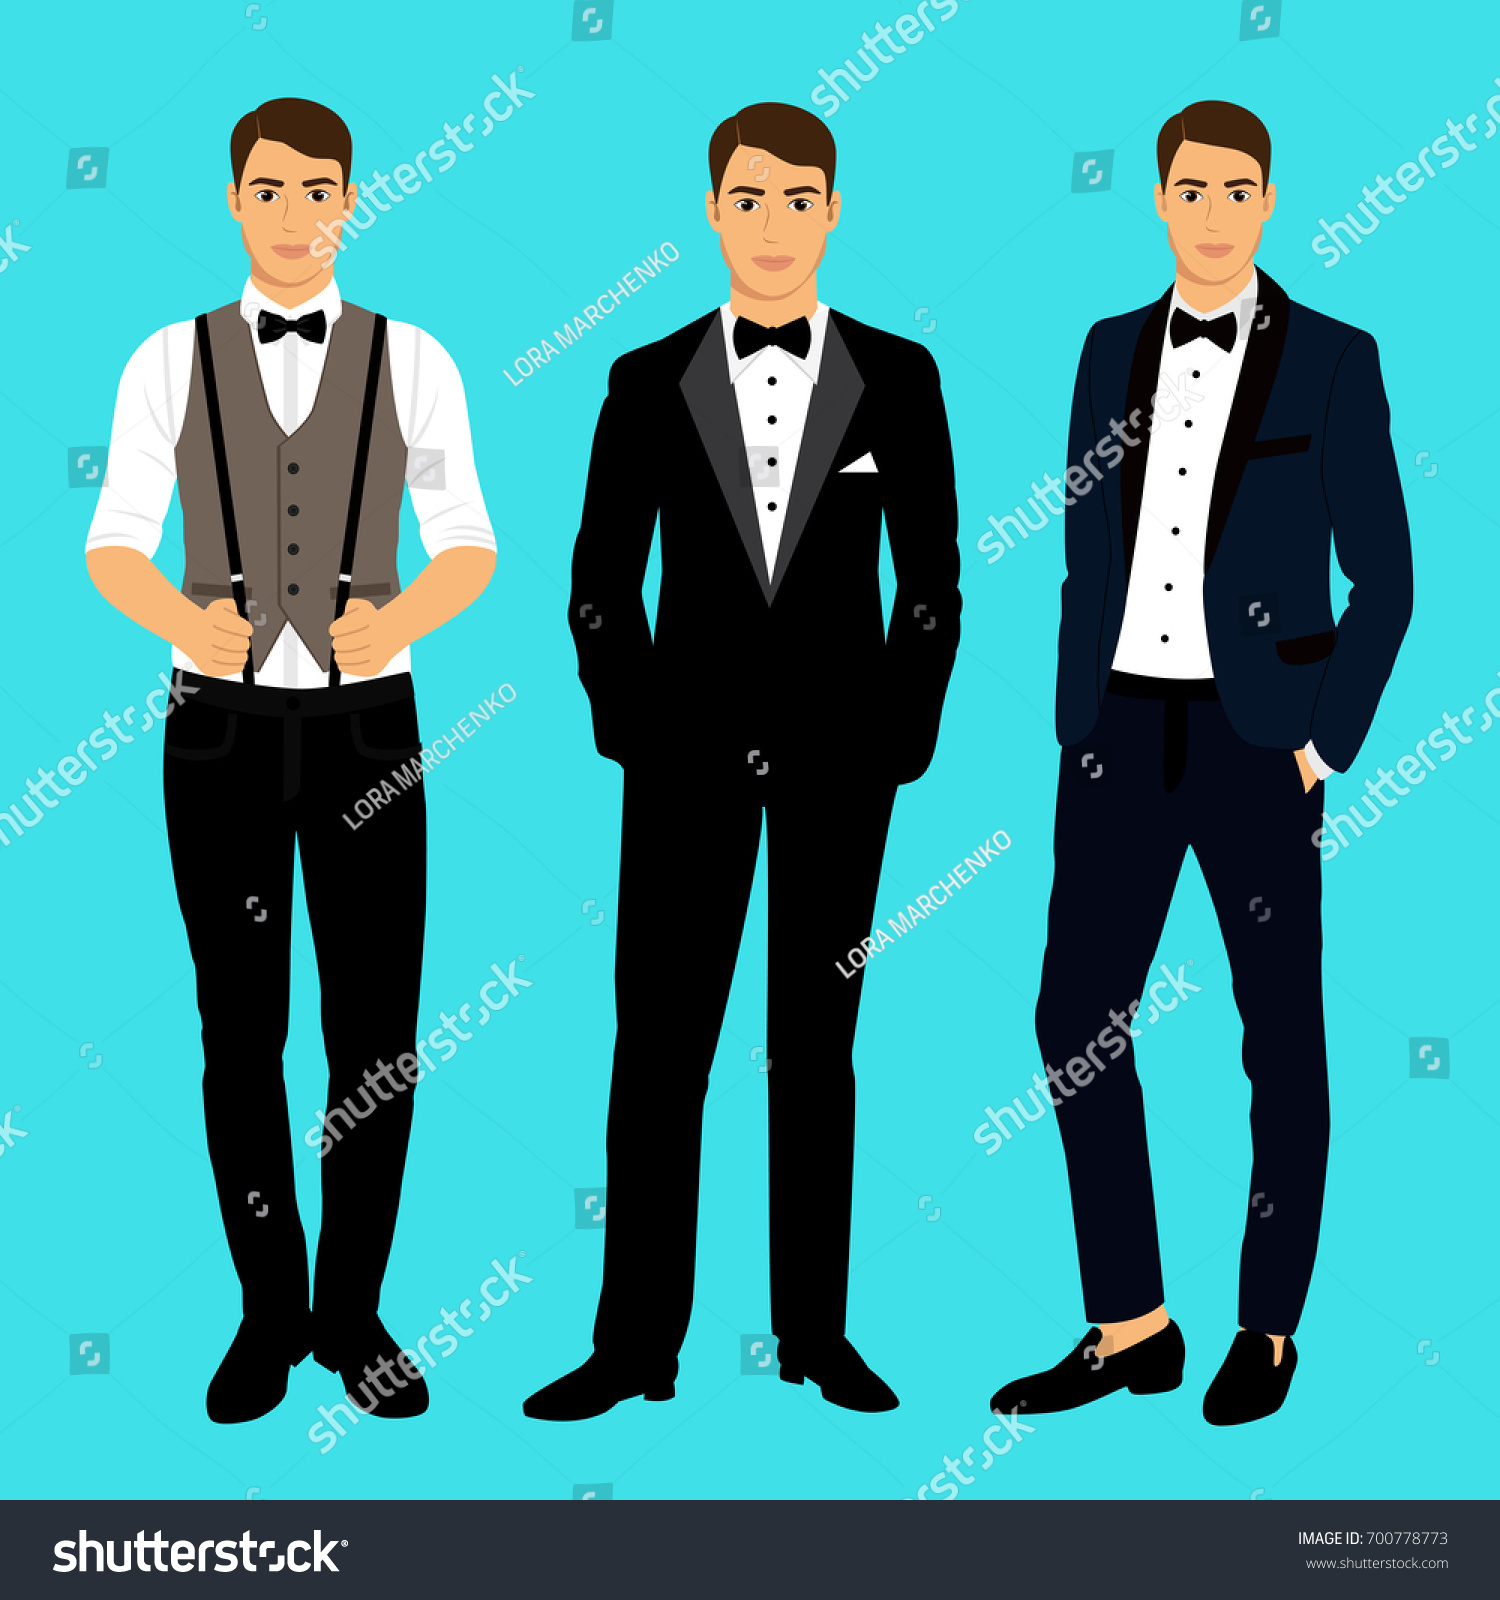 Collection Clothing Groom Wedding Mens Suit Stock Illustration ...